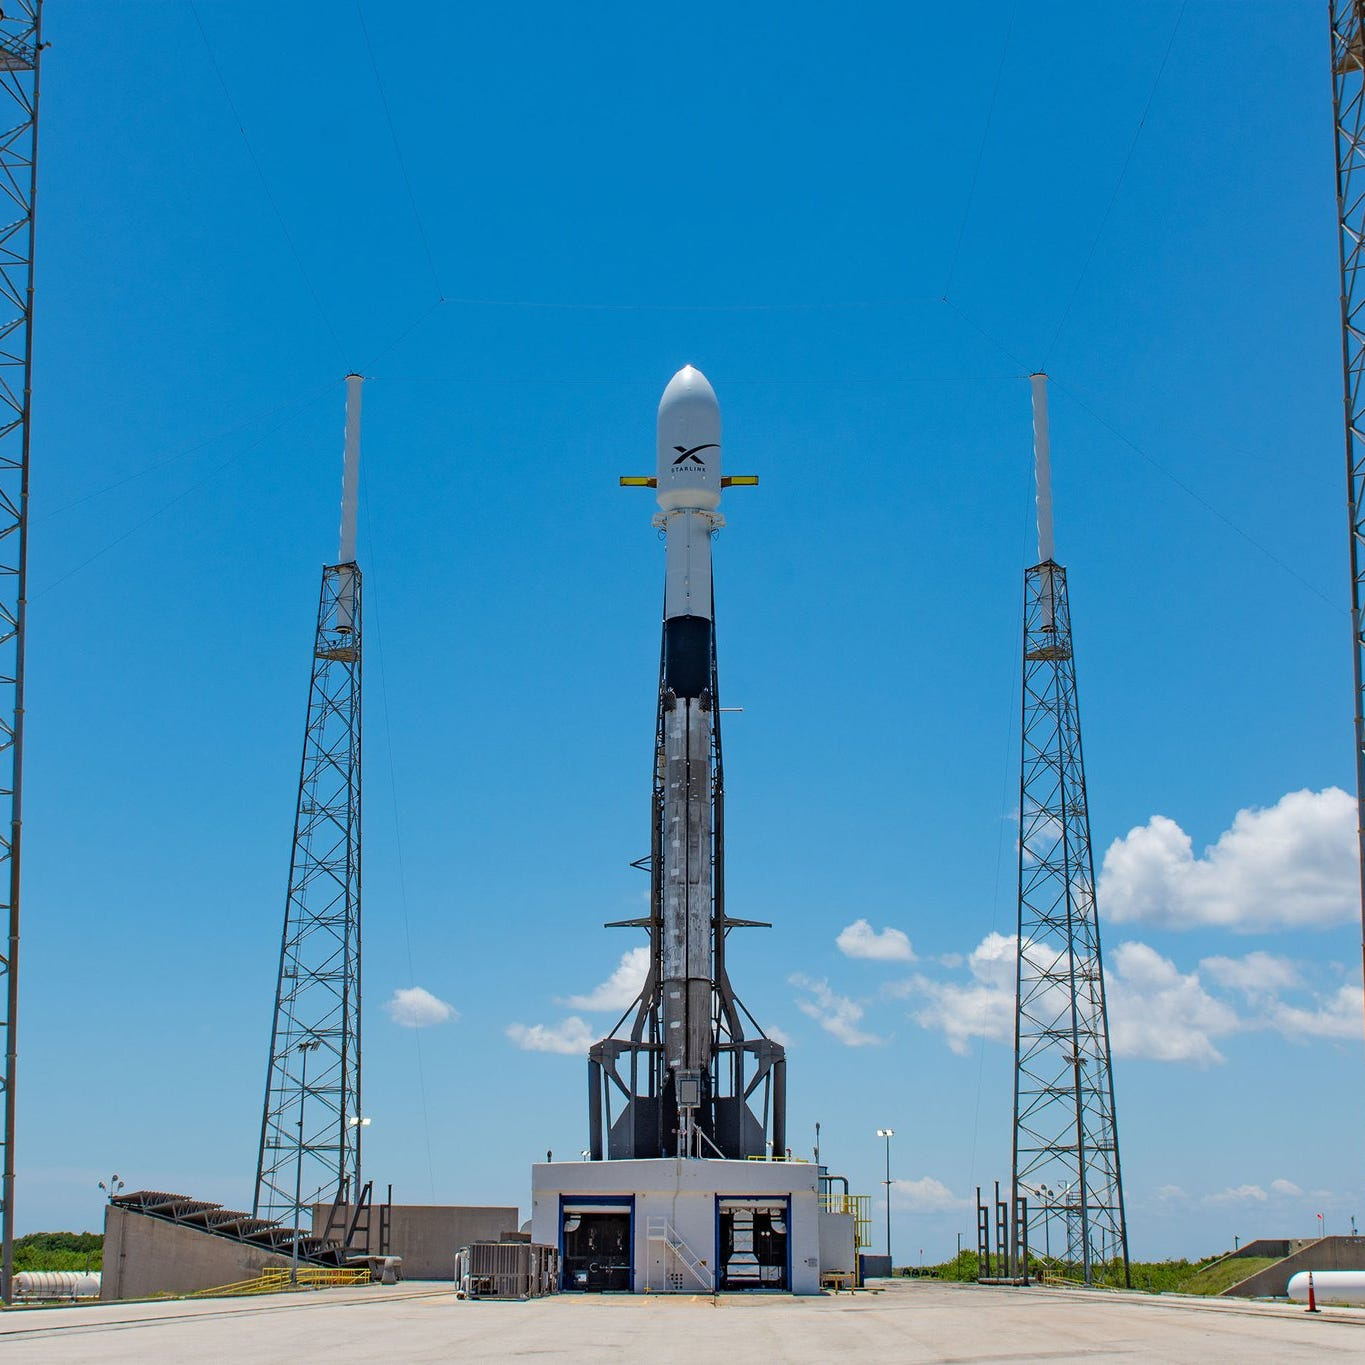 SpaceX Starlink launch: Weather excellent for third Cape Canaveral launch attempt